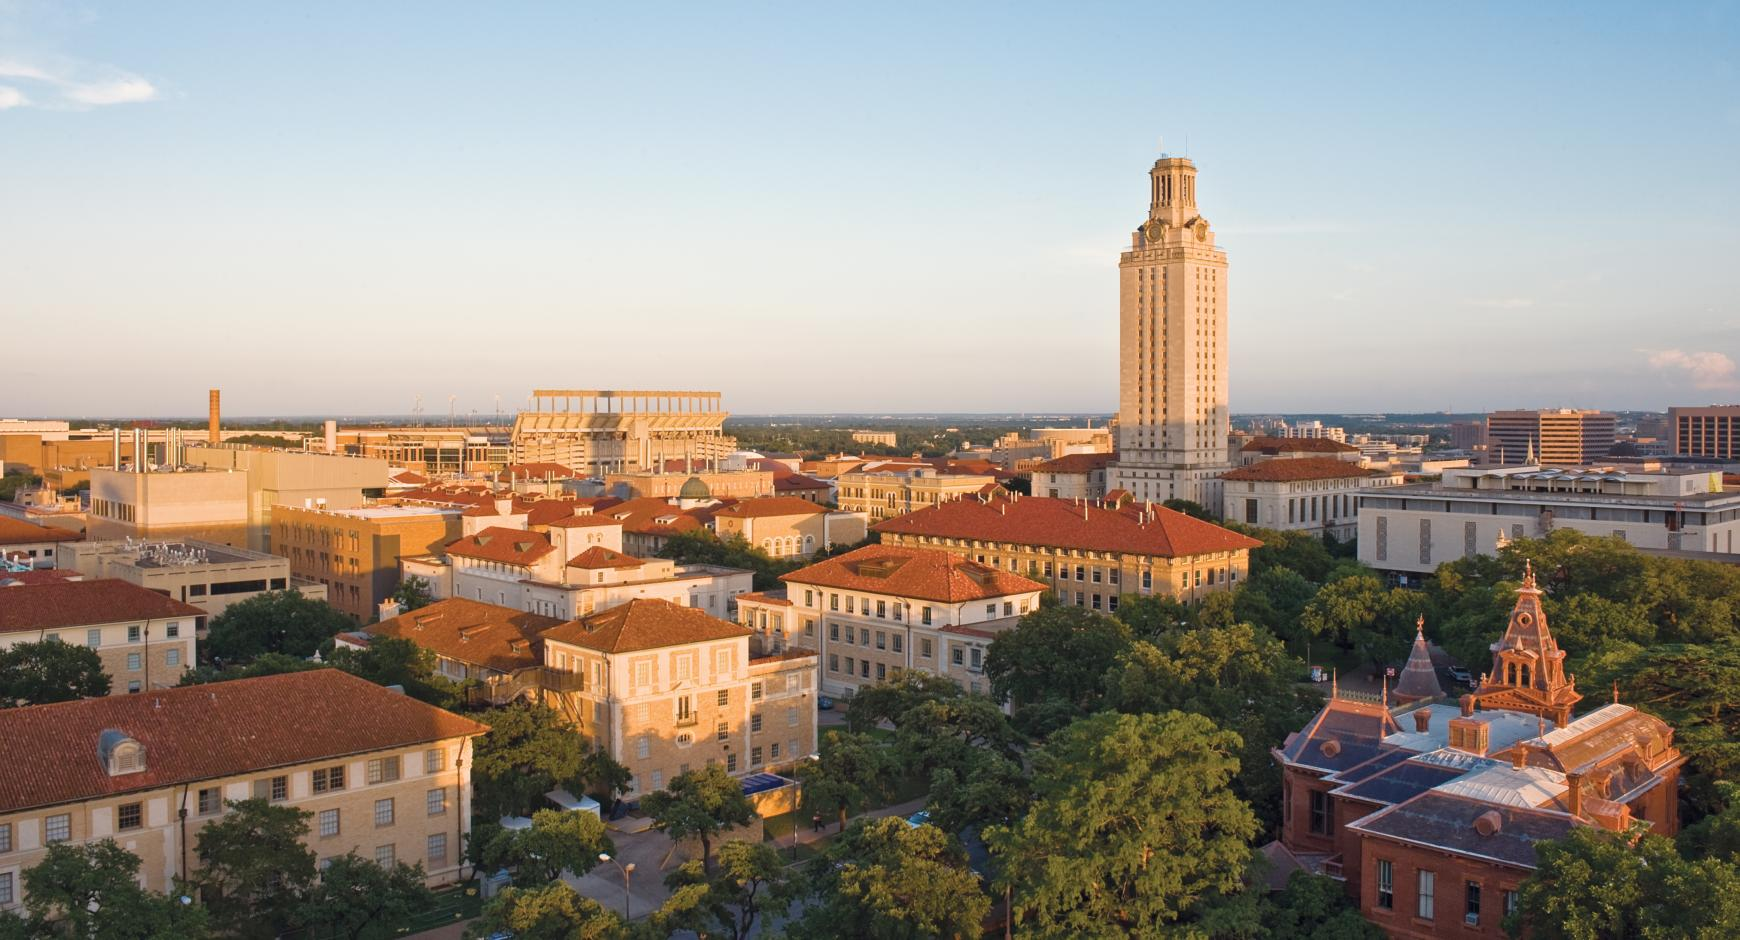 I can't take credit for this stunning picture of UT.  Got it from the UT website and it was taken by Dave Mead.  Love this!